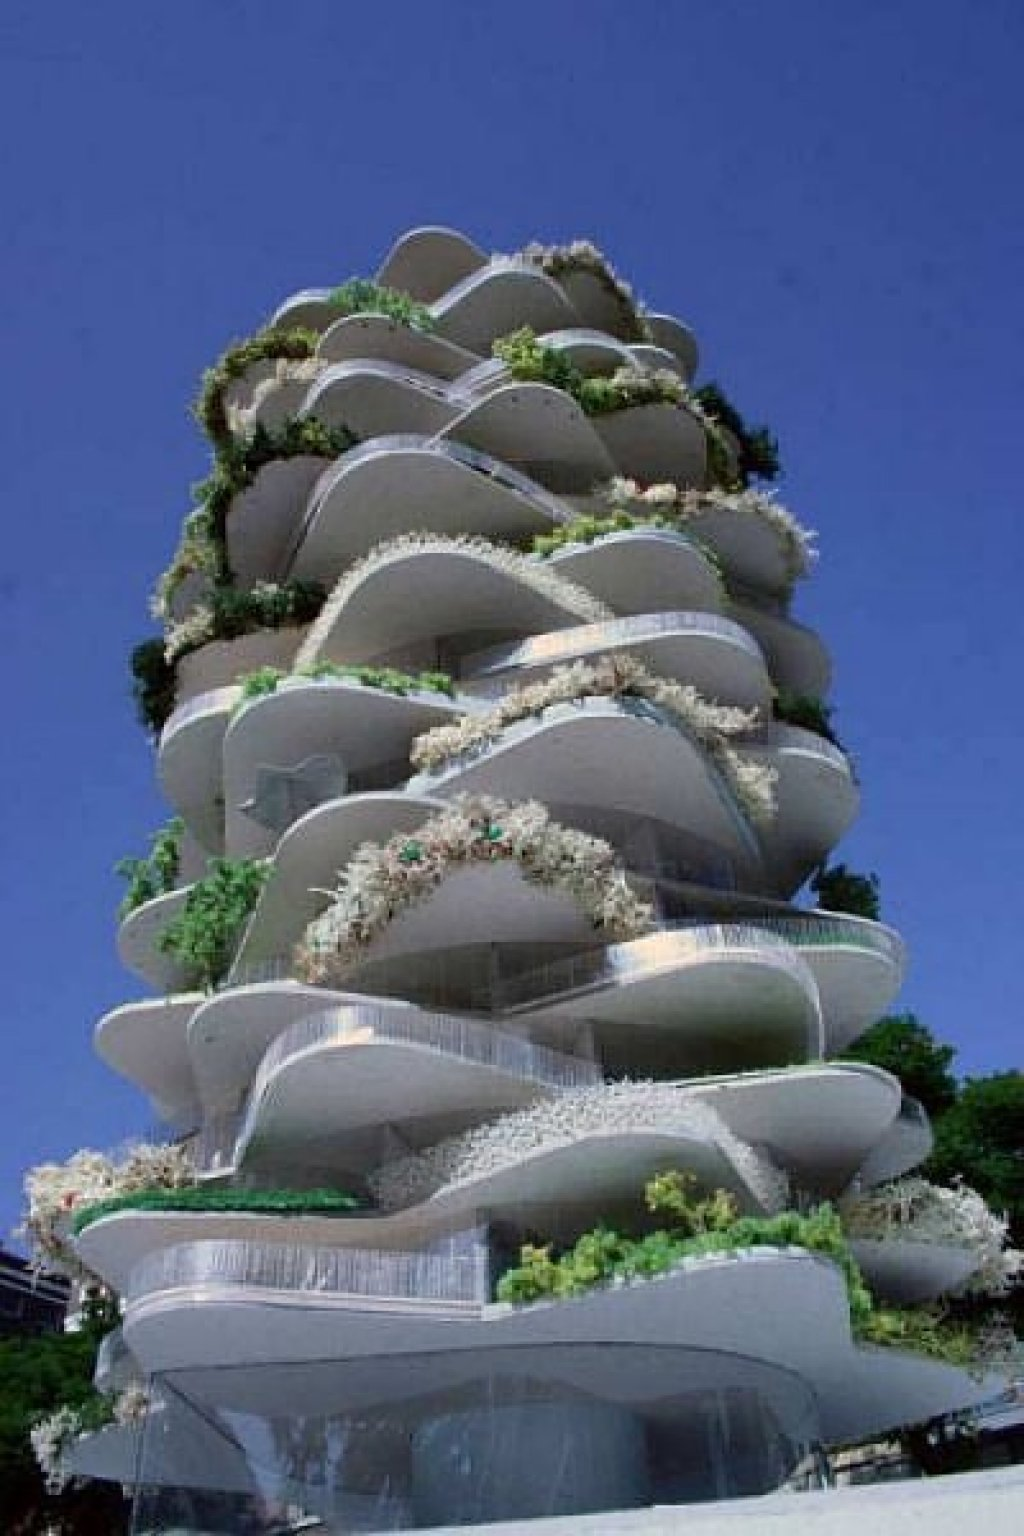 Most amazing buildings around the world Part 2